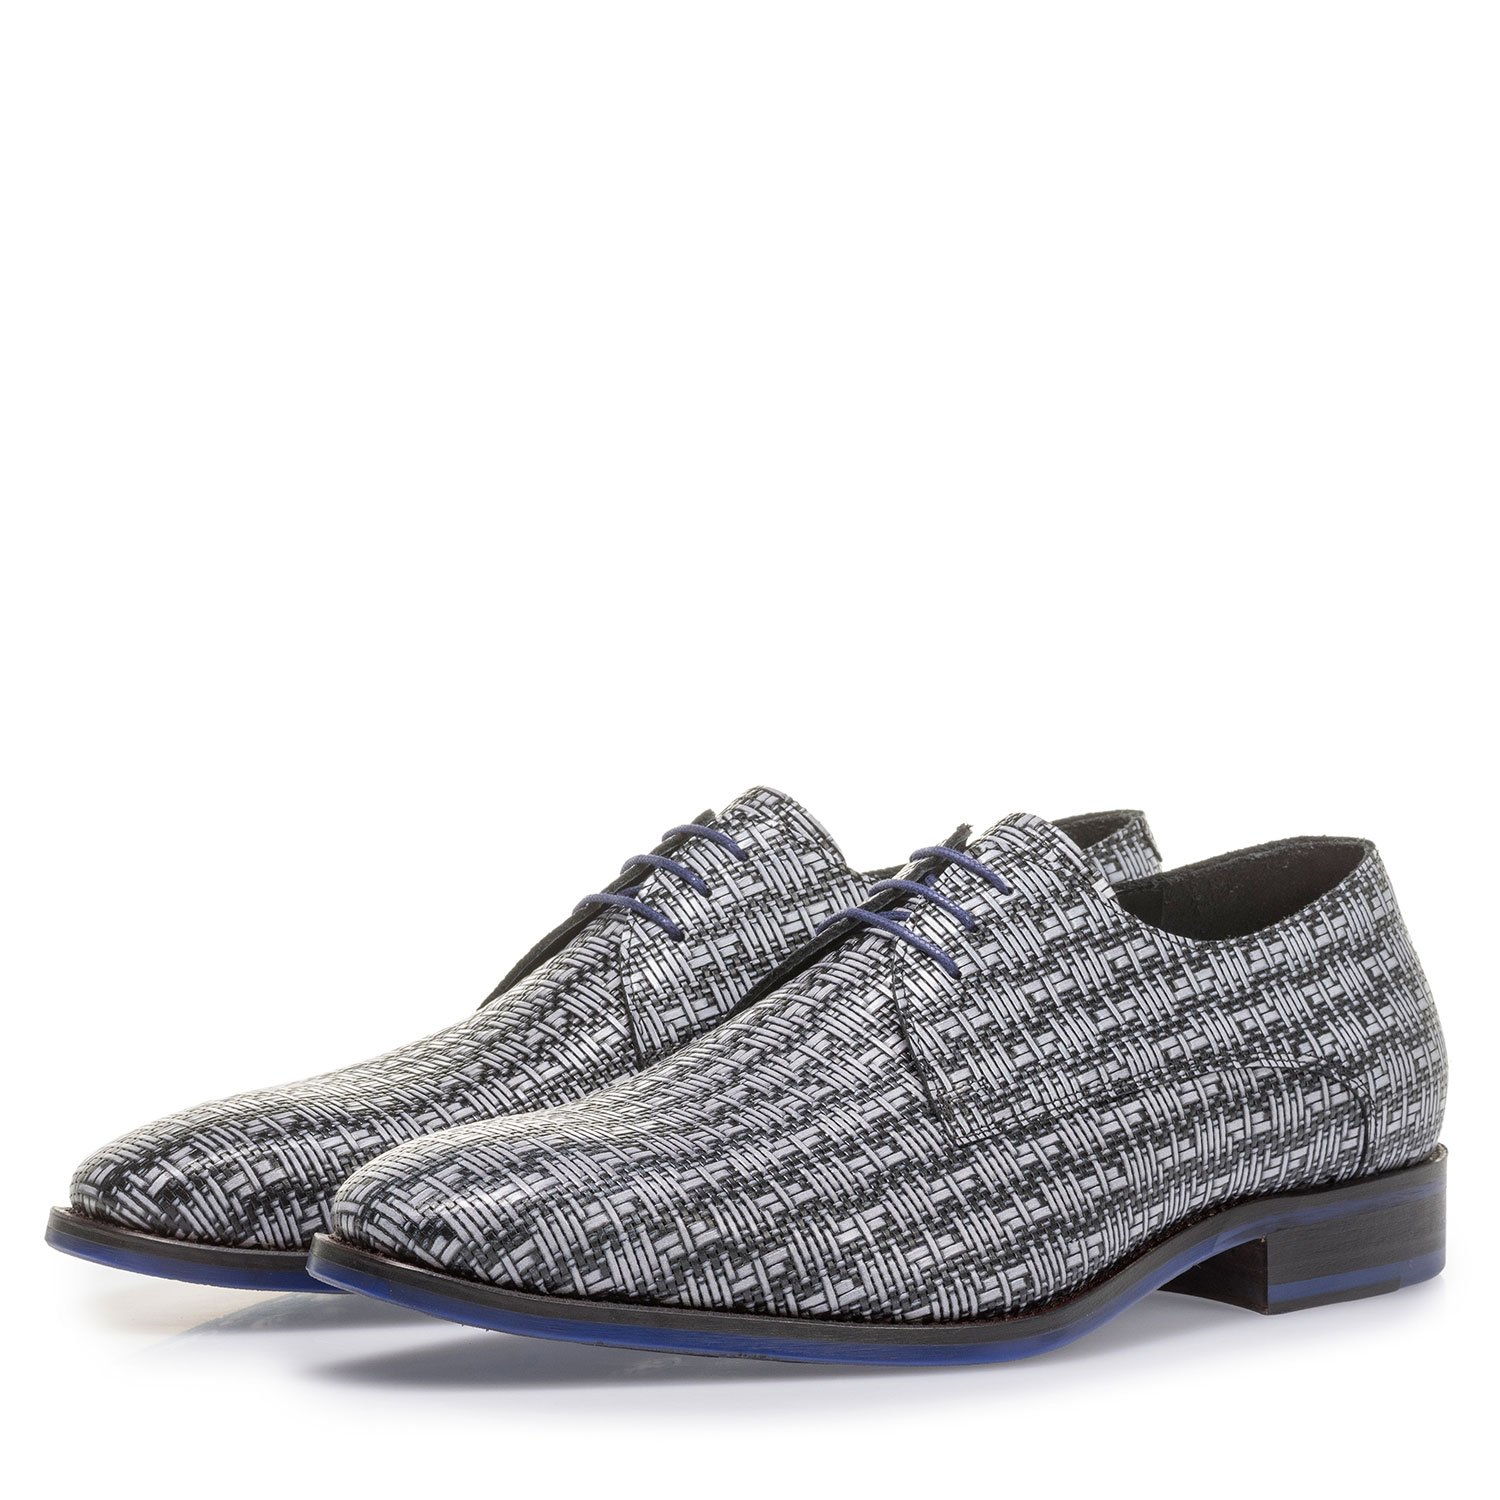 18168/00 - Grey lace shoe with a black graphic print